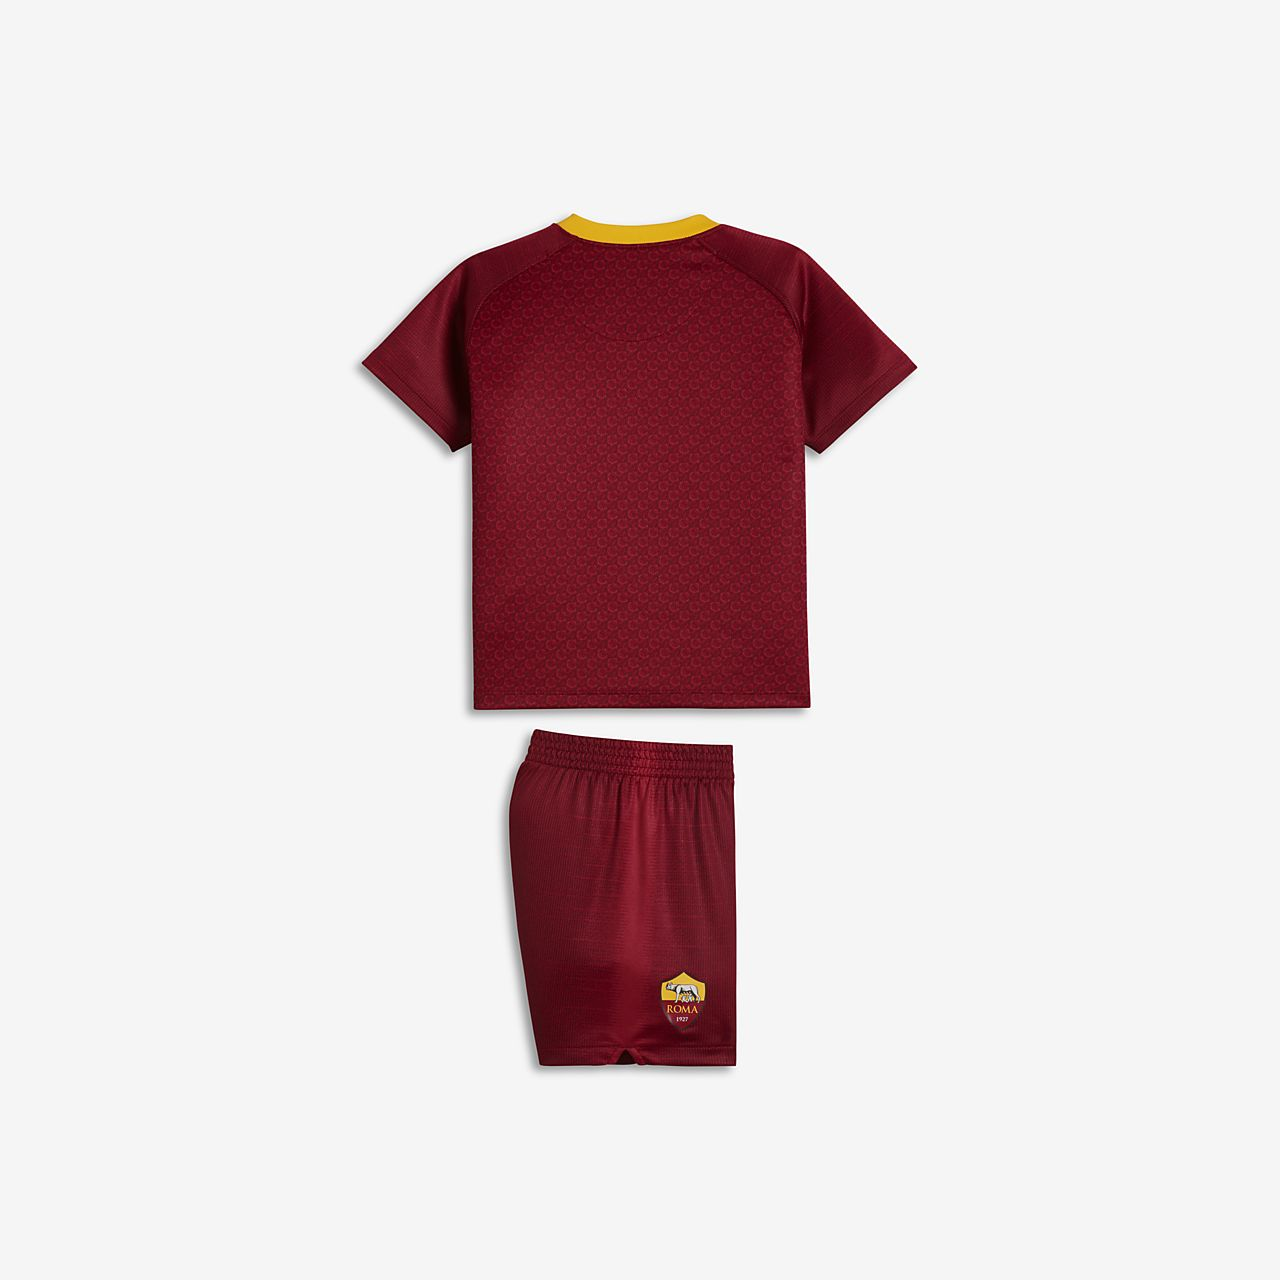 d17d8142c 2018 19 A.S. Roma Stadium Home Baby Football Kit. Nike.com ZA